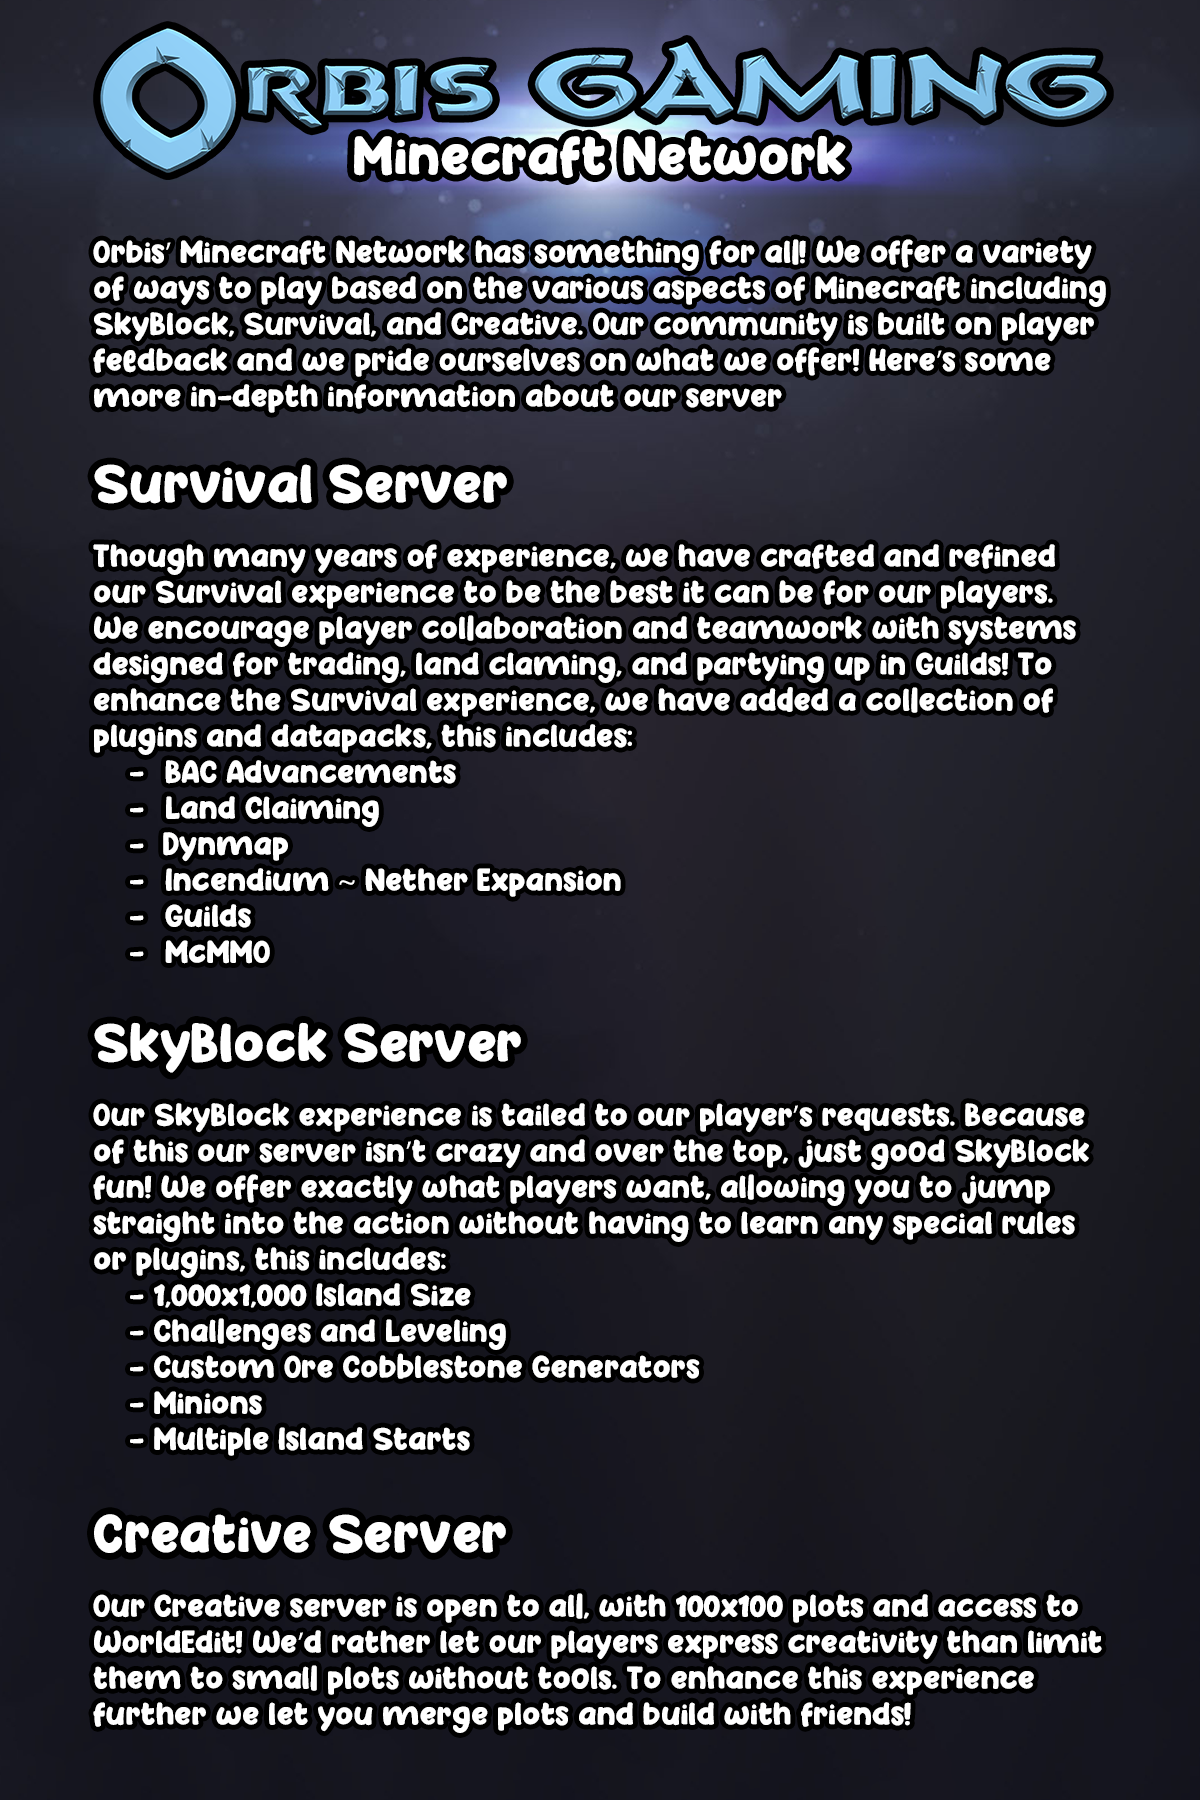 Orbis' Minecraft Network has something for everyone! We offer a variety of ways to play based on the various aspects of Minecraft including SkyBlock, Survival, and Creative. Our community is built on player feedback and we pride ourselves on what we offer! Here's some more in-depth information about our servers: Survival: Though many years of experience, we have crafted and refined our Survival experience to be the best it can be for our players. We encourage player collaboration and teamwork with systems designed for player trading and partying up in Guilds! To enhance the vanilla experience, we have added several plugins and datapacks including: -BAC Advancements -Cave Biomes -Dynmap -Incendium ~ Nether Expansion -Guilds -McMMO SkyBlock: Our SkyBlock experience is tailored to our player's requests. Because of this our server isn't crazy and over the top, just good SkyBlock fun! We offer exactly what players want, allowing you to jump straight into the action without having to learn any special rules or plugins, this includes: -1,000x1,000 Island Size -Challenges and Levelling -Custom Ore Cobblestone Generators -Minions -Multiple Island Starts Creative: Our Creative server is open to all, with 100x100 plots and access to WorldEdit! We'd rather let our players express their creative than limit them to small plots without tools. To enhance this experience further we let you merge plots and build with friends!